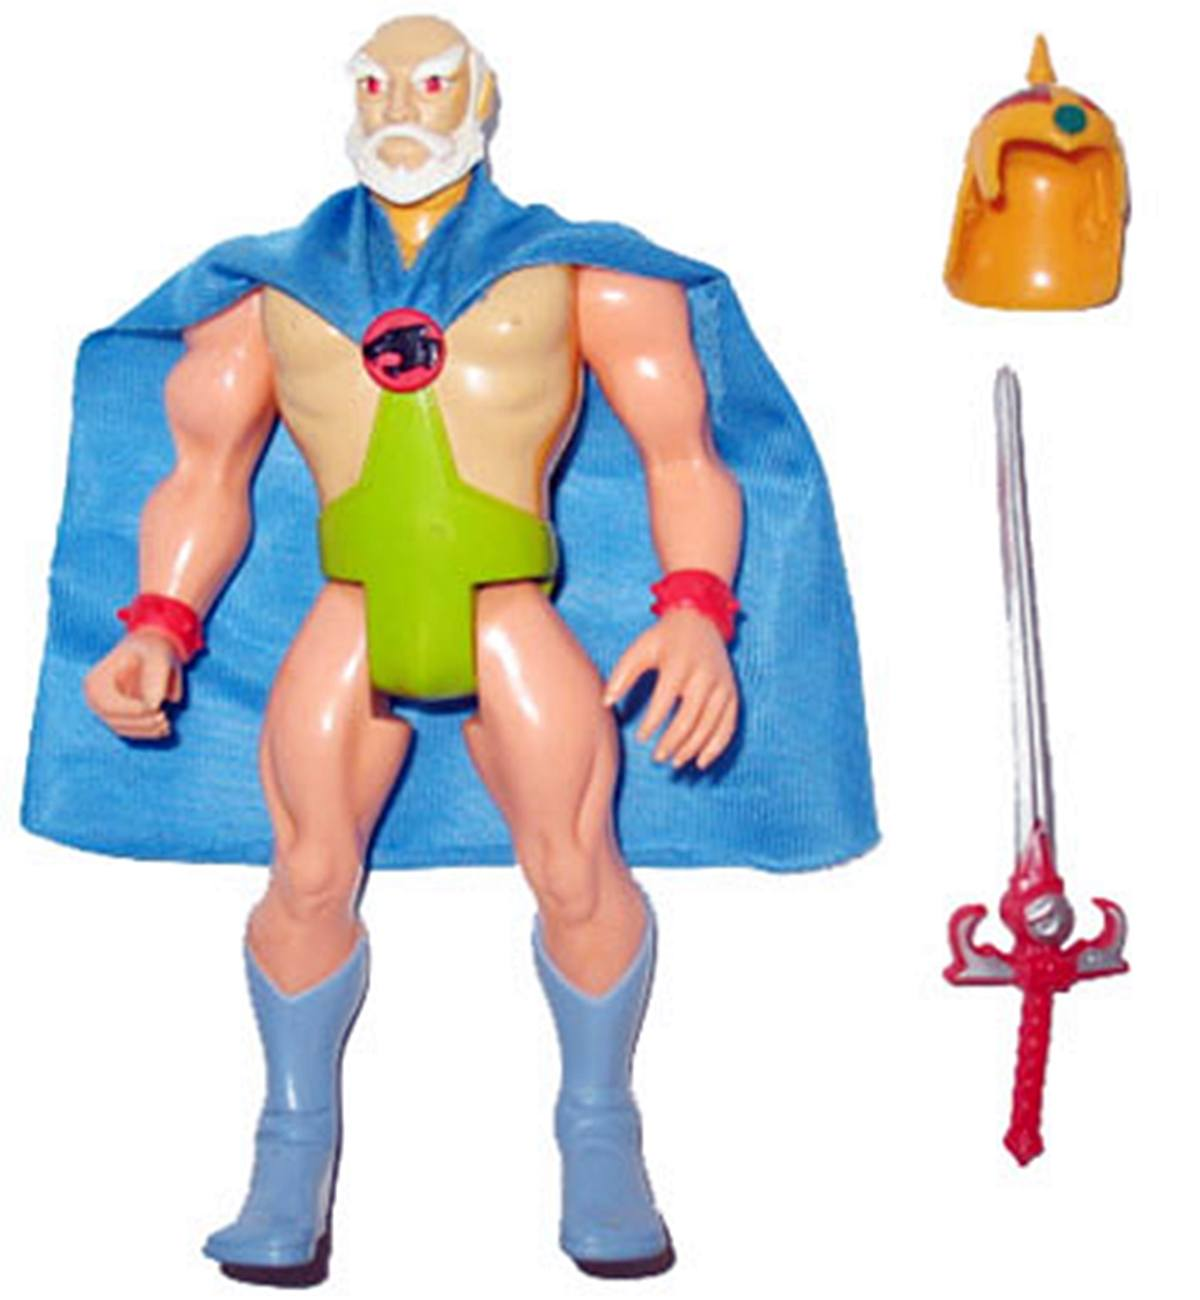 12 9 How Many Of These 16 ThunderCats Toys Did You Own?